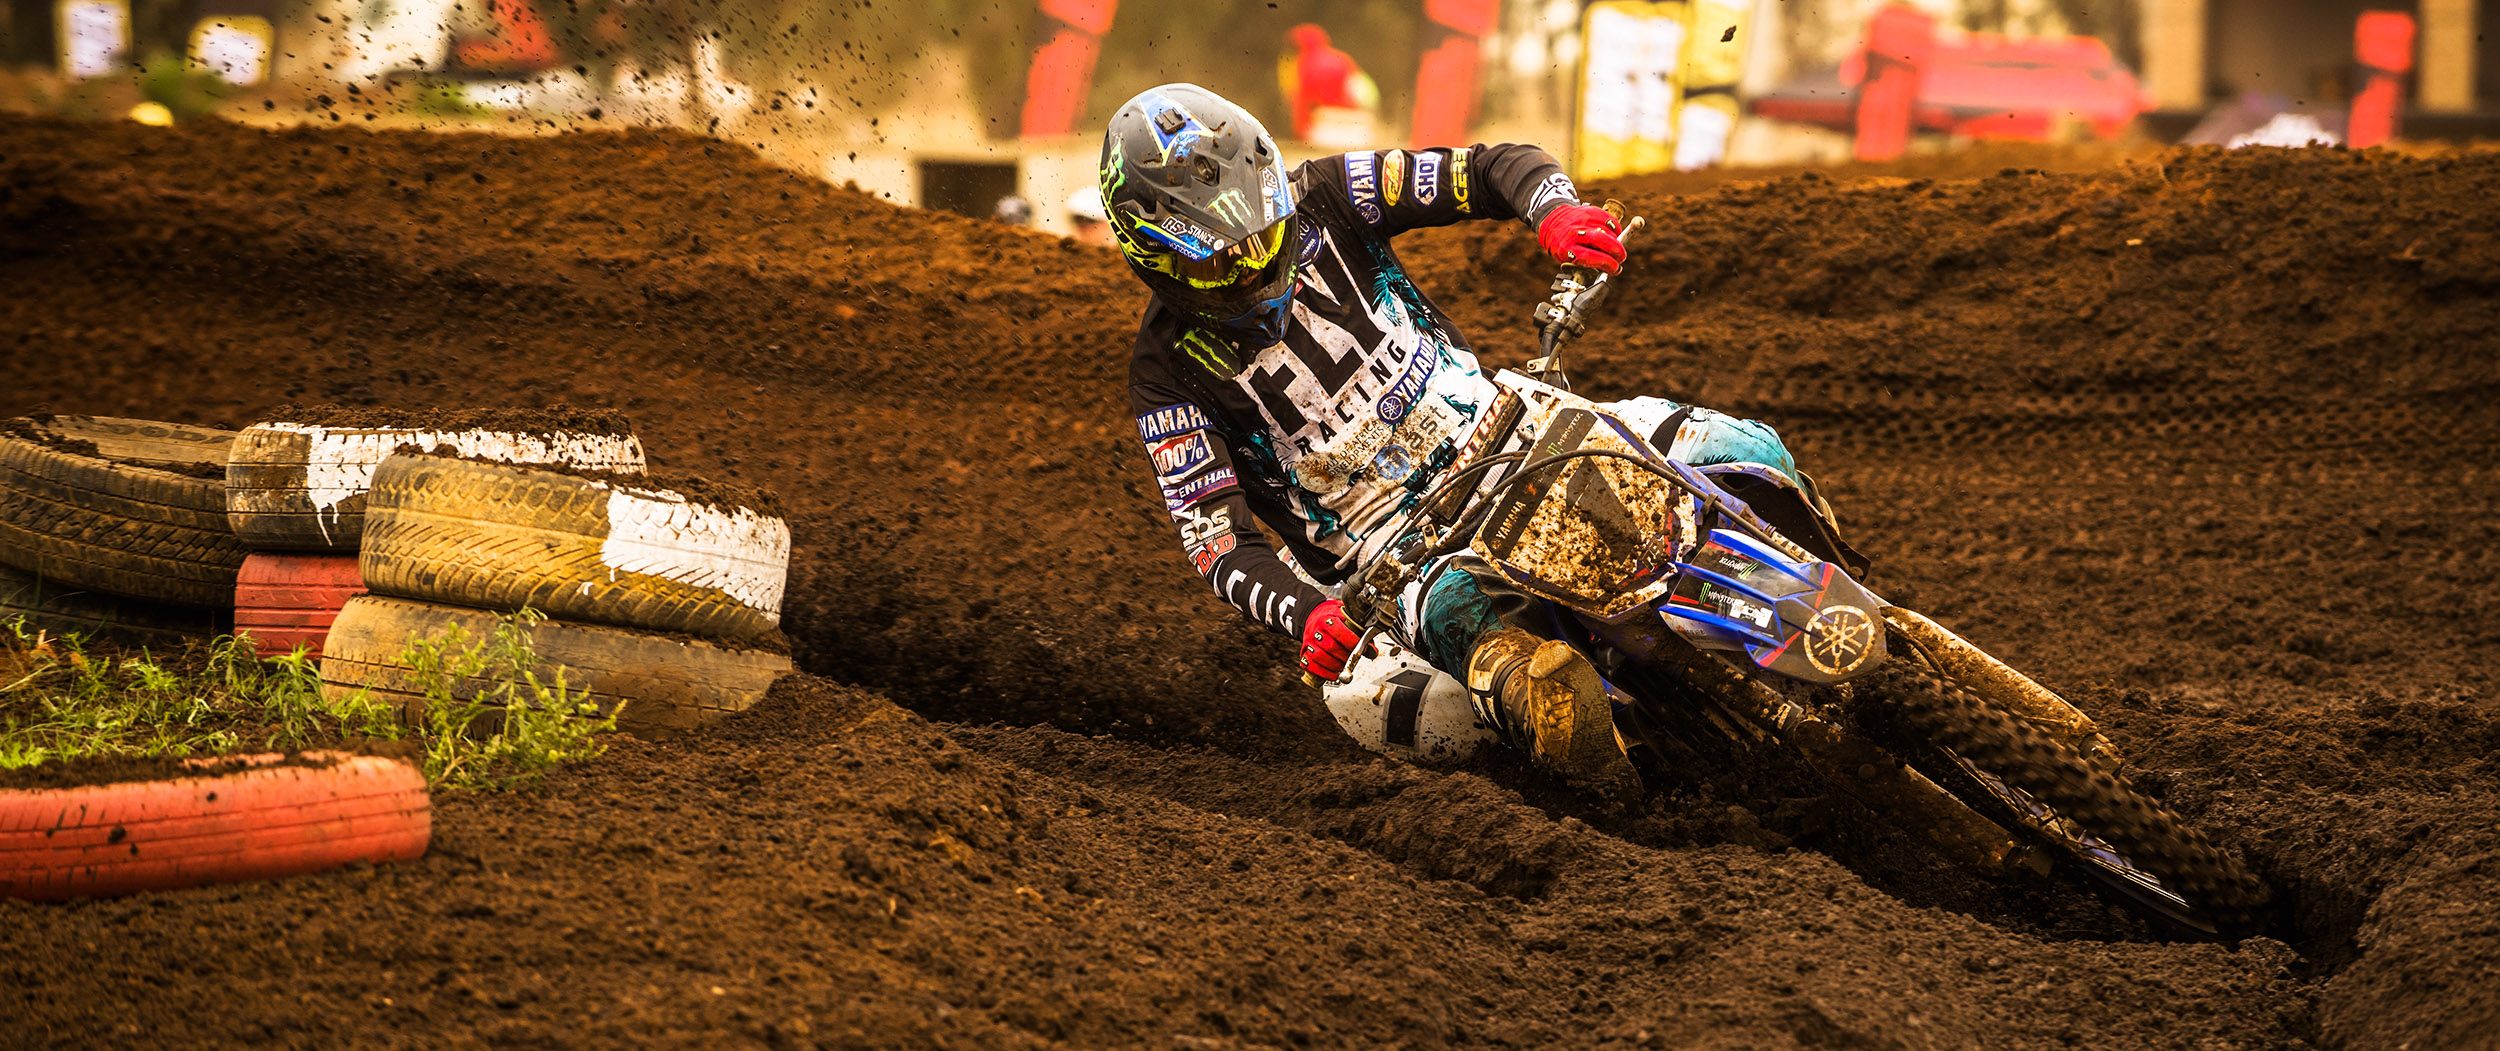 Purdon impresses at MotoX final